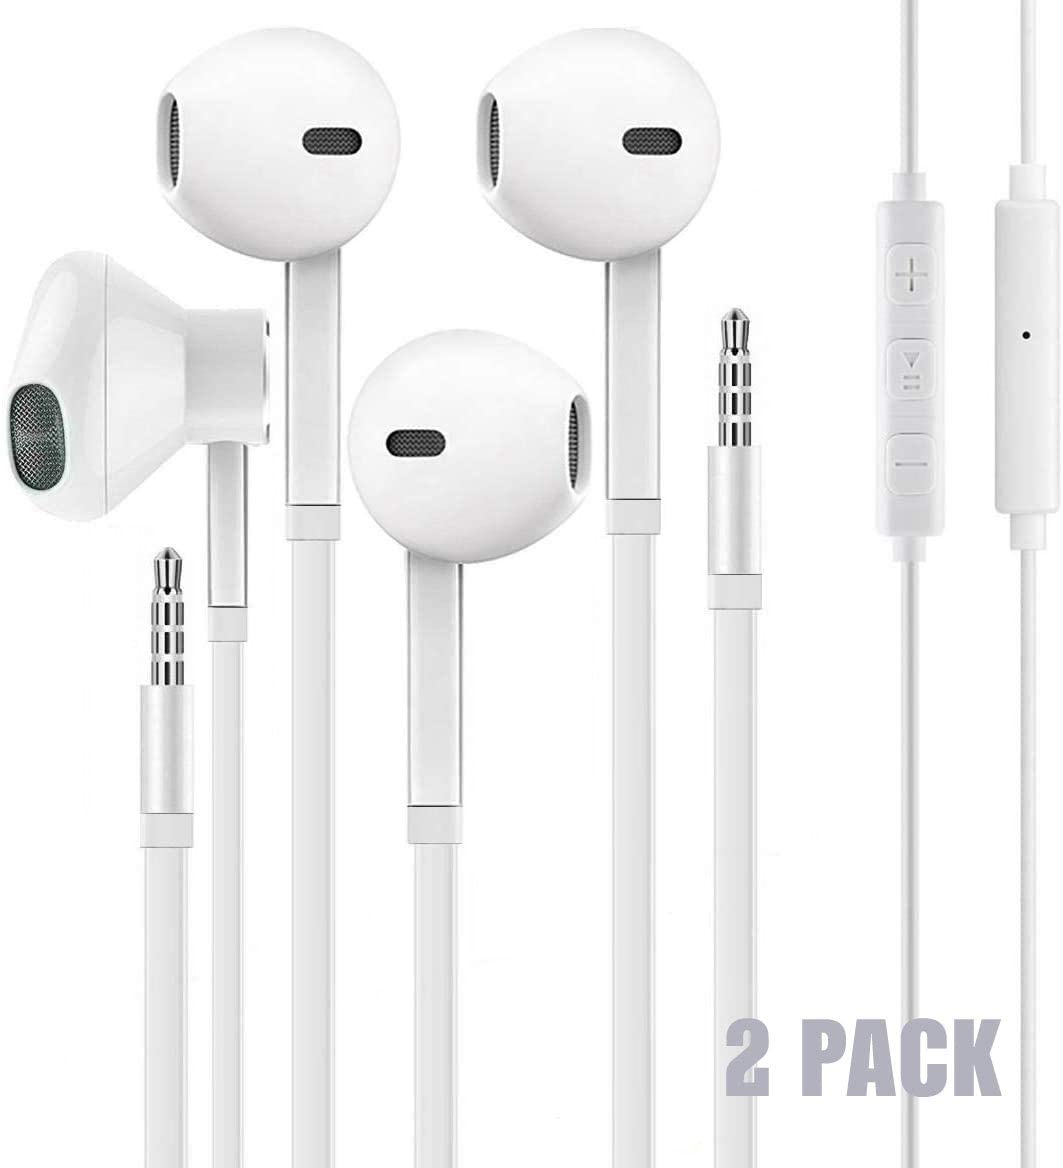 2PACK Wired Earphones with Microphone Compatible with iPhone Samsung Android Laptop Chromebook iPad